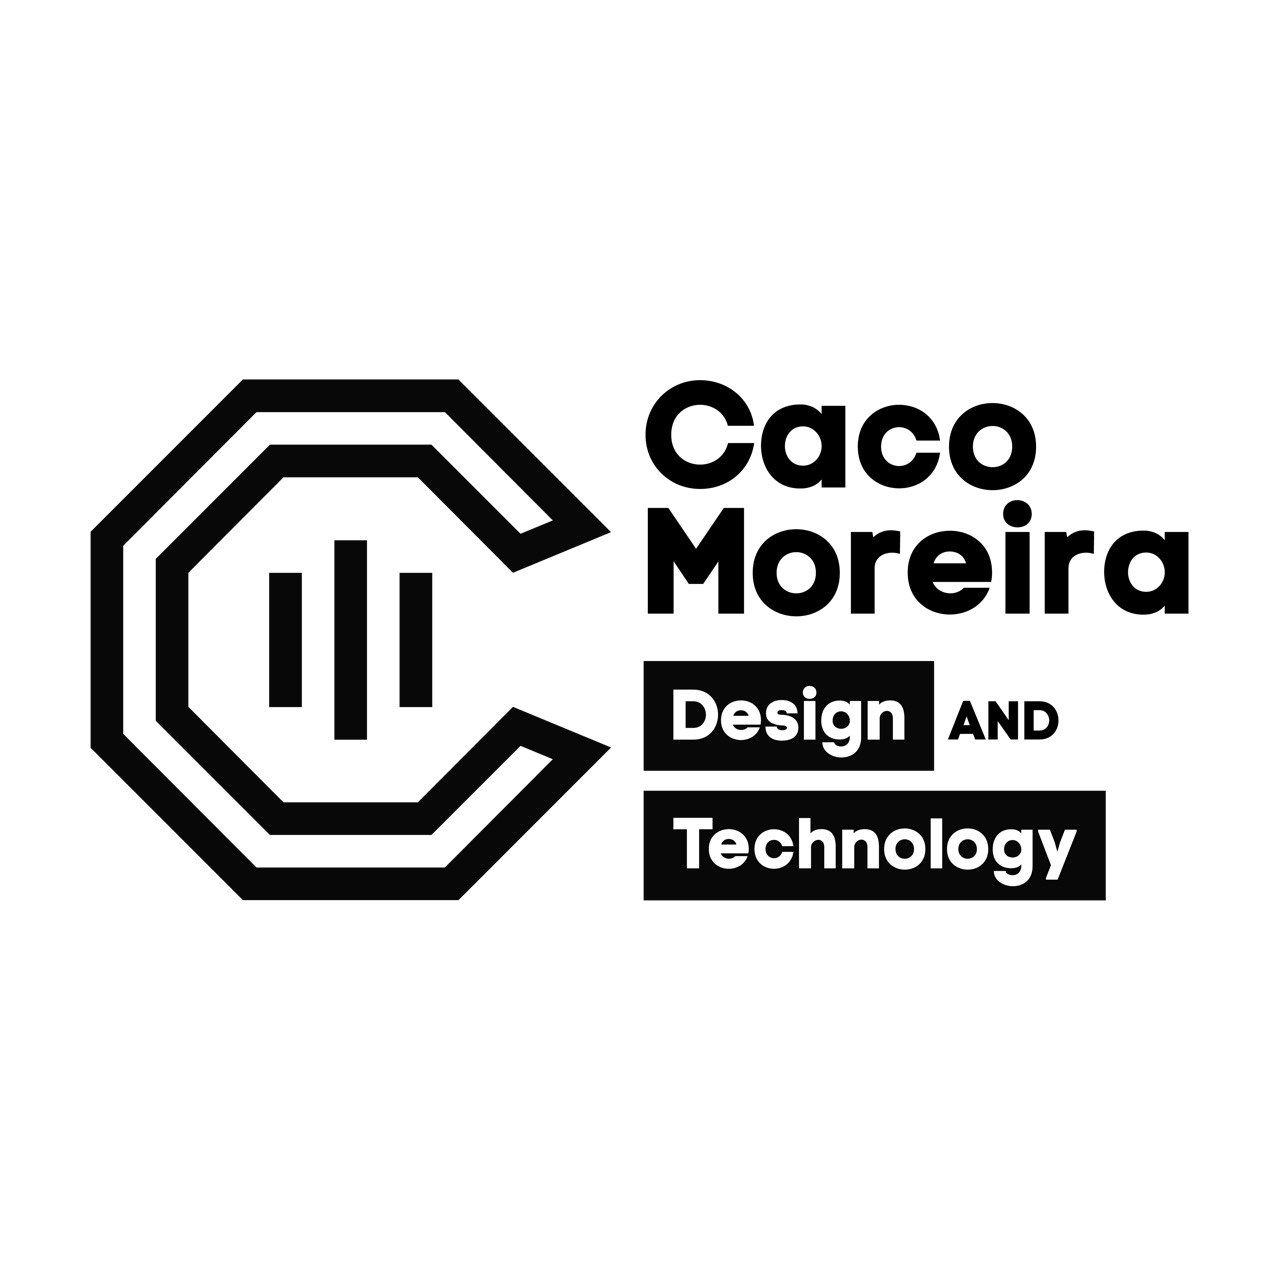 Cocoa Design - Design and Technology